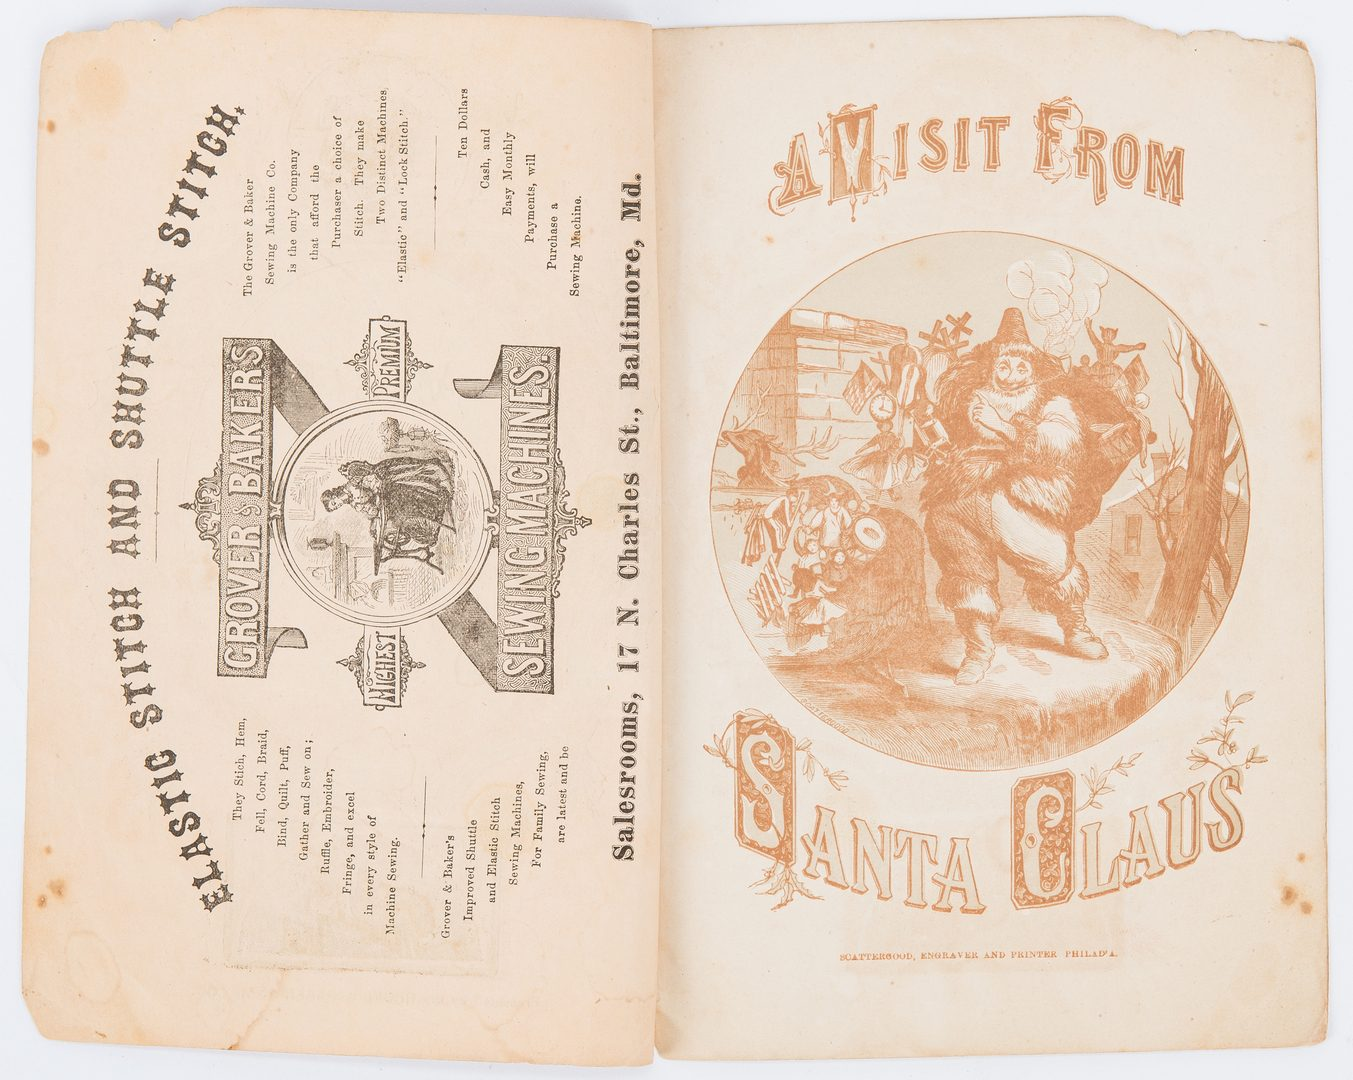 Lot 290: A Visit from Santa, illus. Scattergood